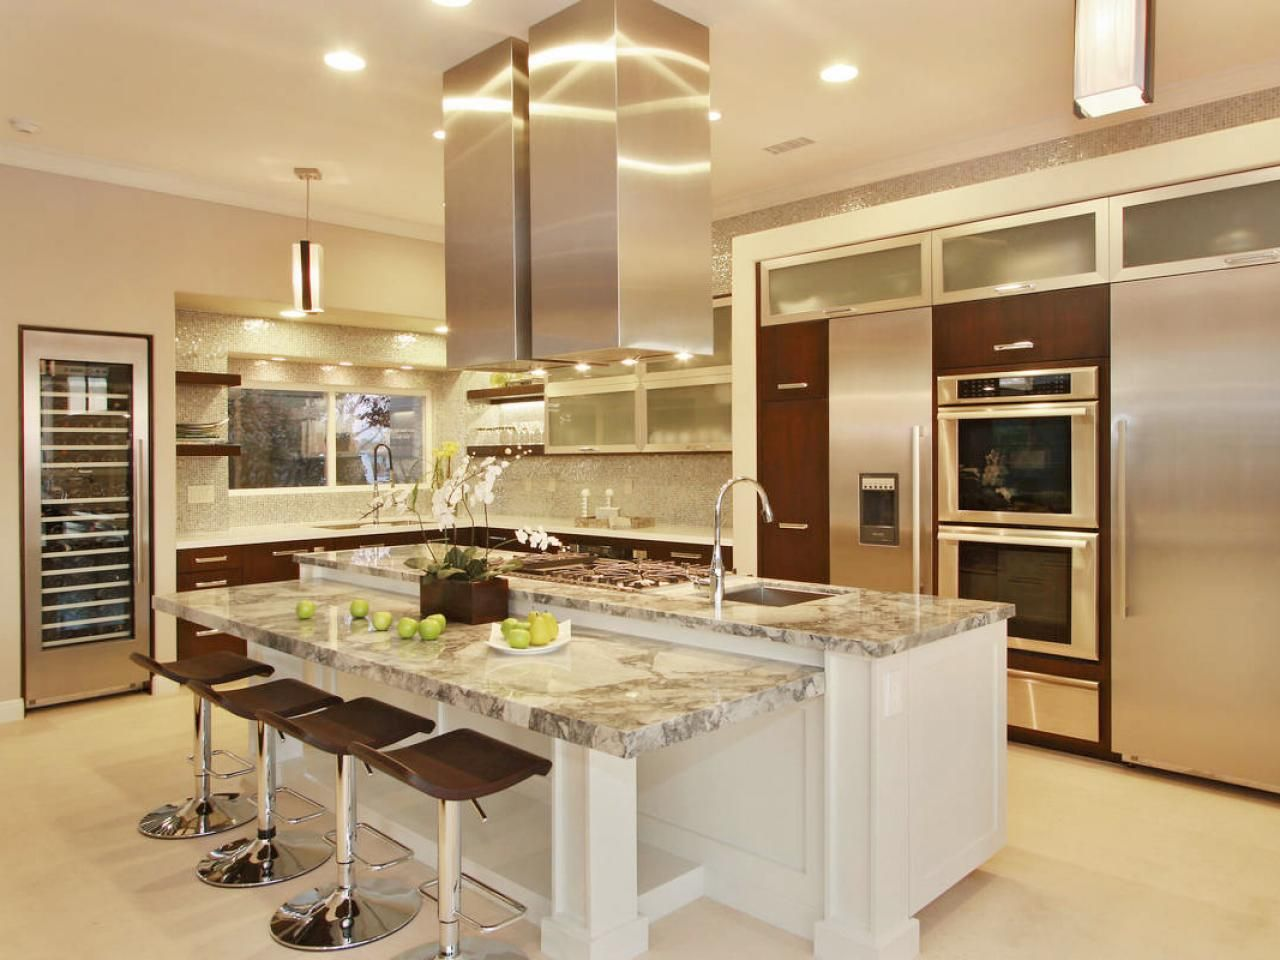 Uncategorized Universal Kitchen Design top 6 kitchen layouts design kitchens and beautiful layout templates different designs choose remodeling